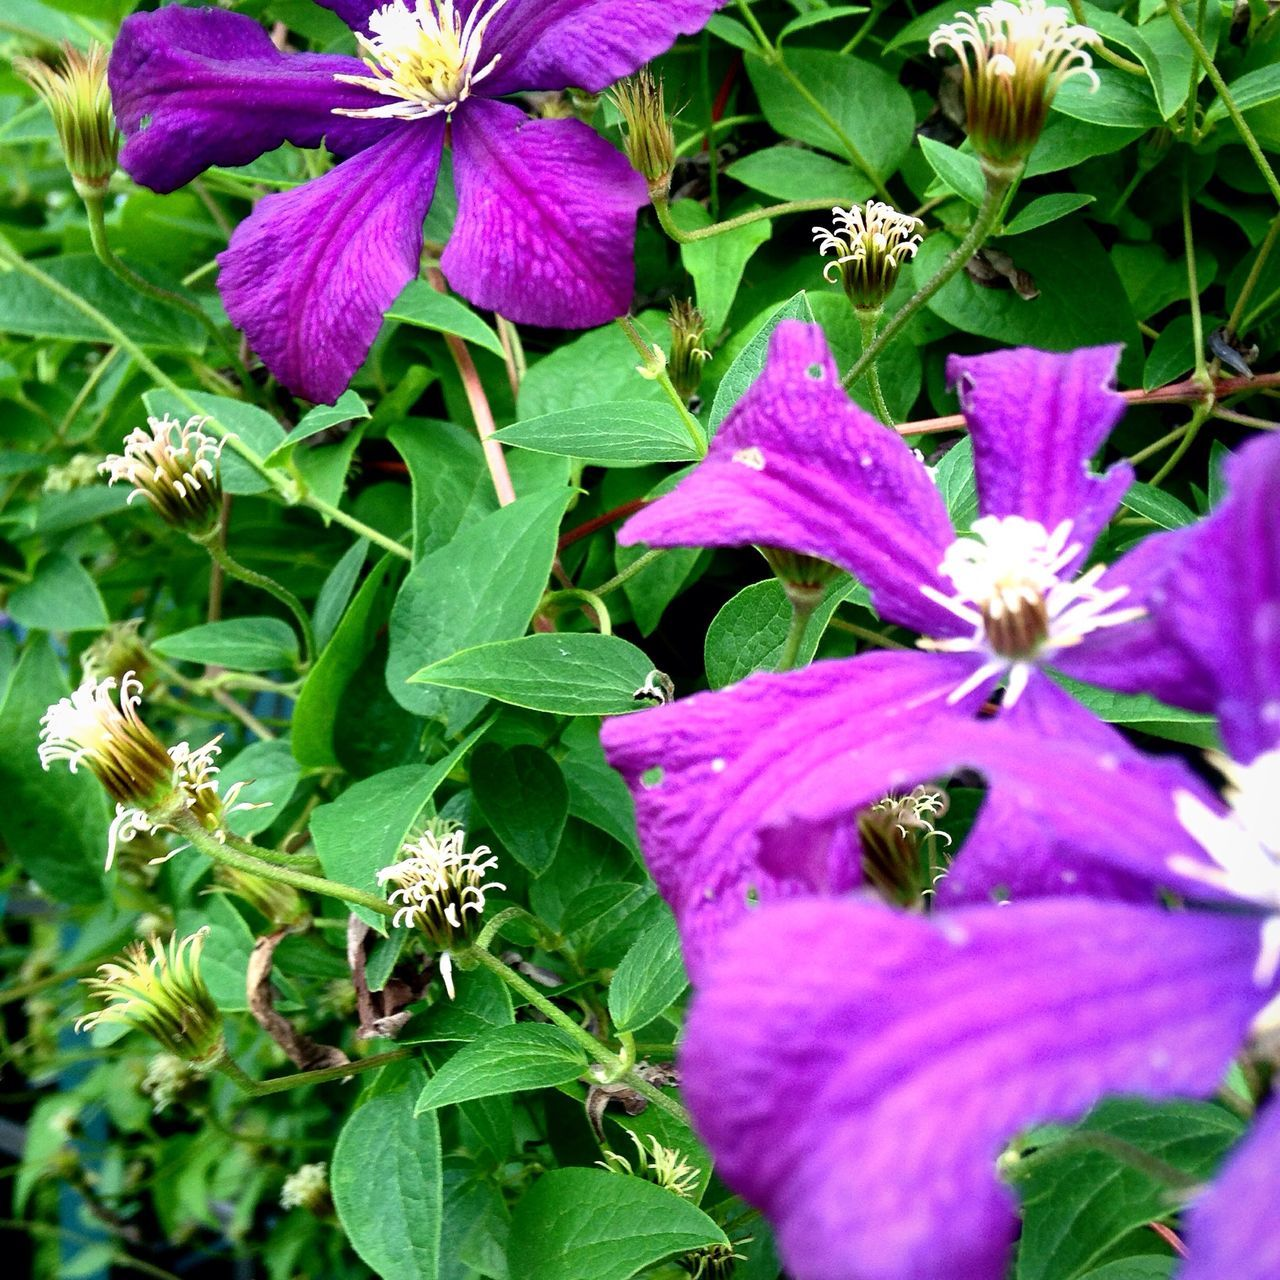 Clematisphotography Clematis Vine Clematis Flower Clematis Taking Photos Beautiful Nature Flower Check This Out Flower Collection Summertime 🌞 Flower Photography Showcase July